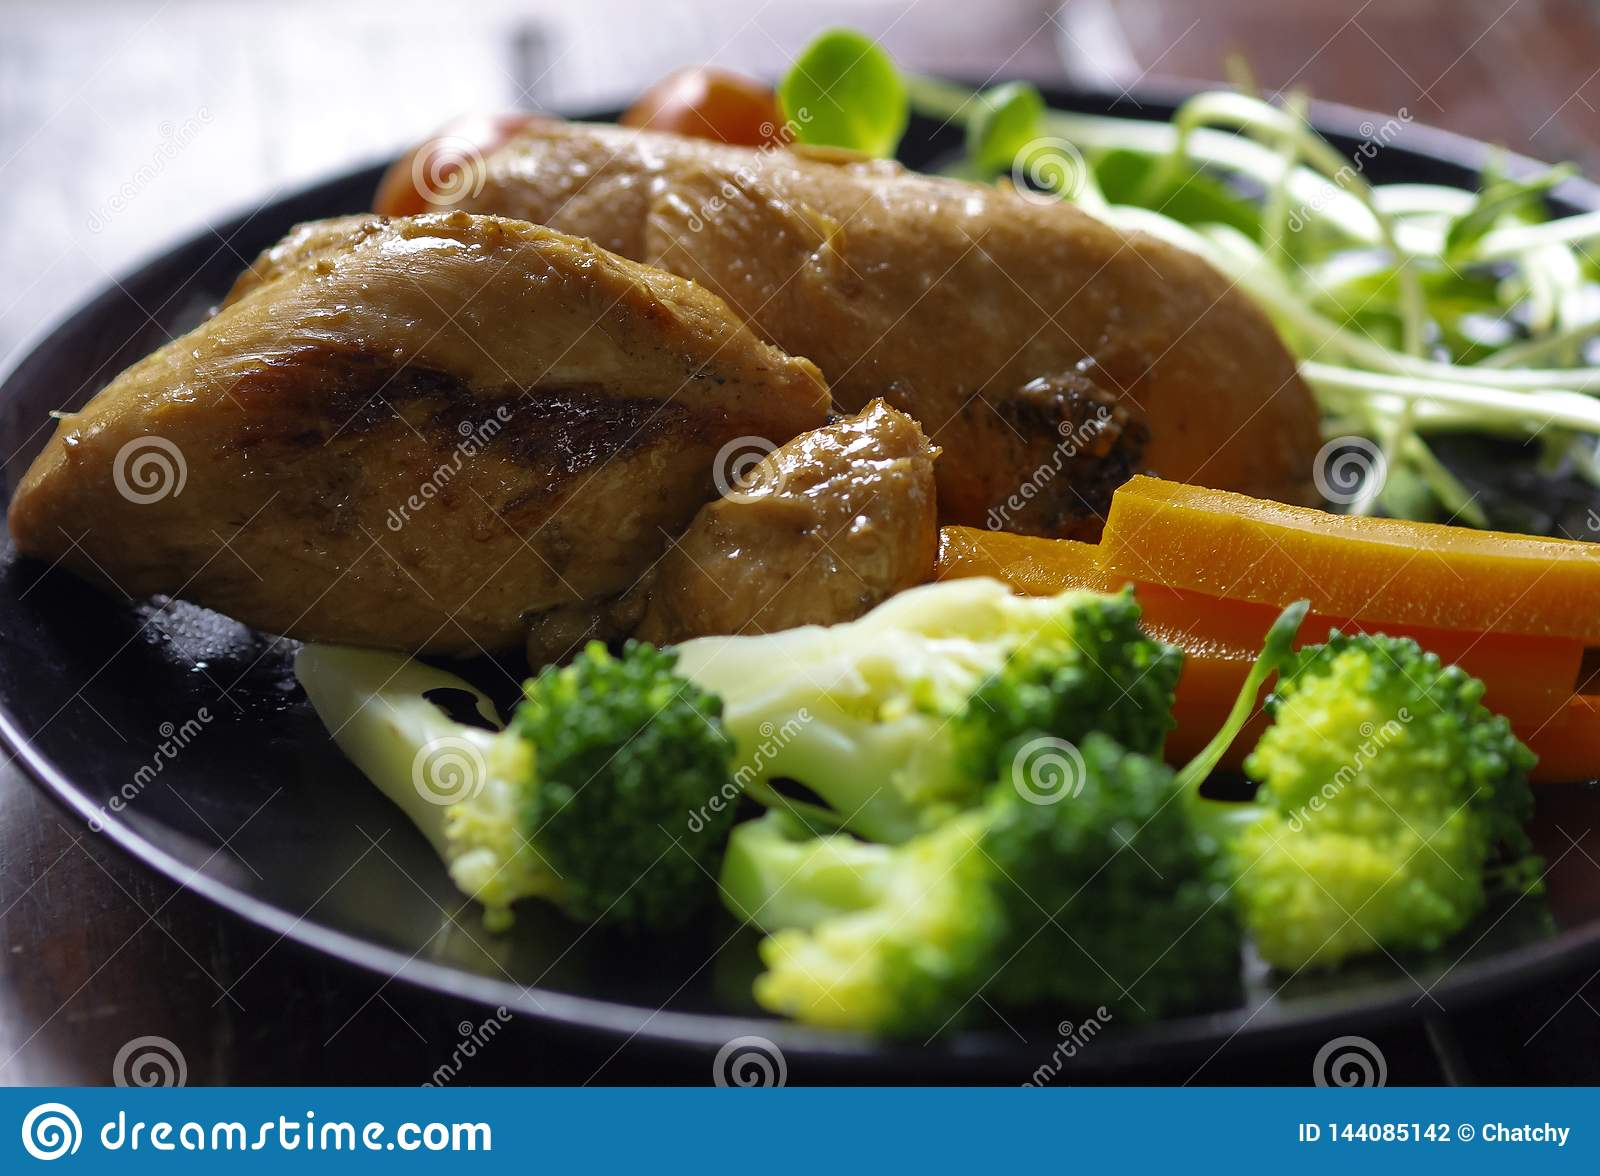 Chicken breast clean food for good healthly